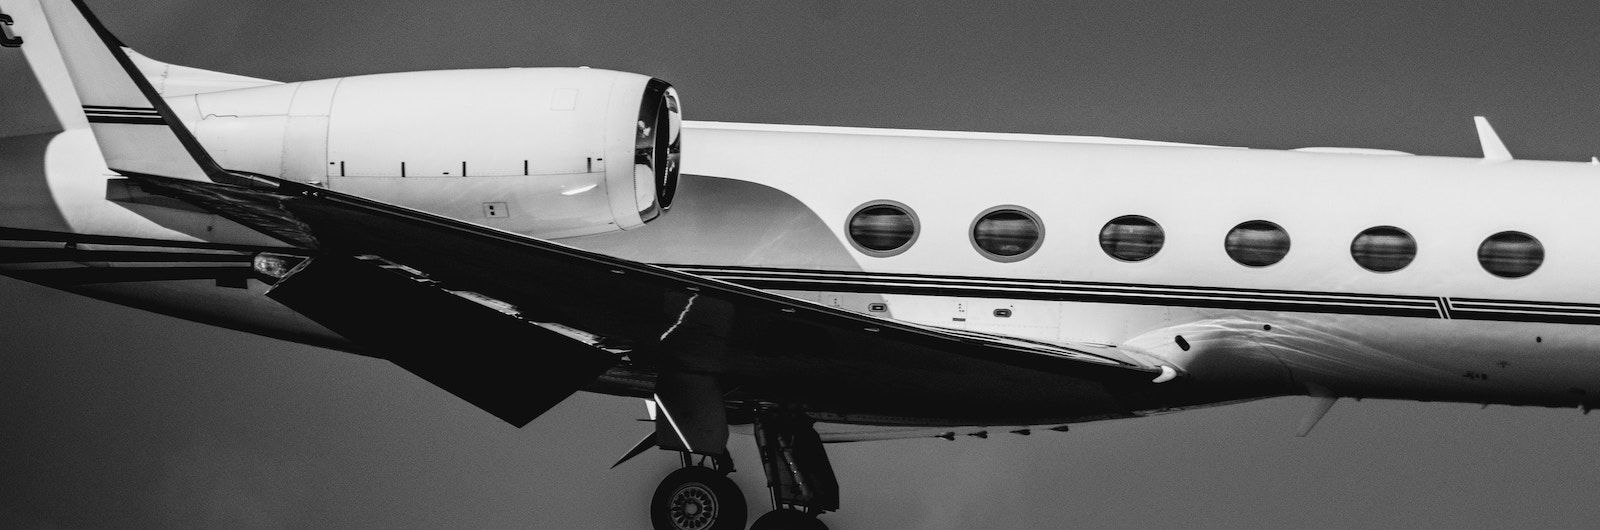 Your Private Plane Is Here